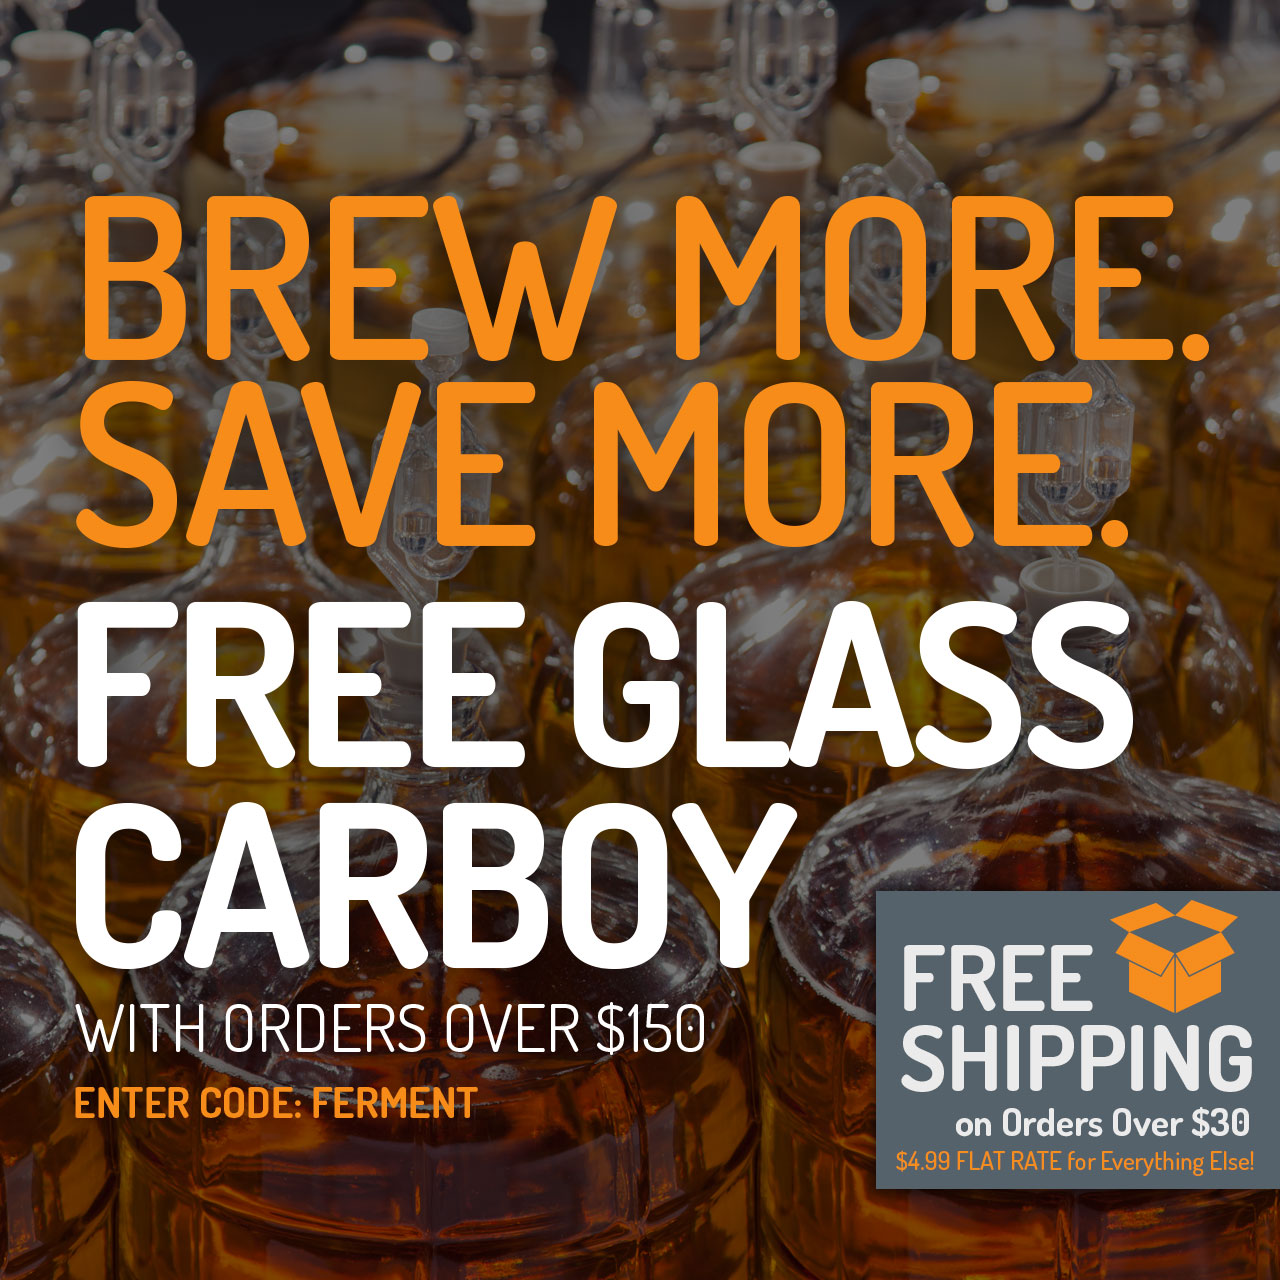 Free Carboy With Orders Over $150